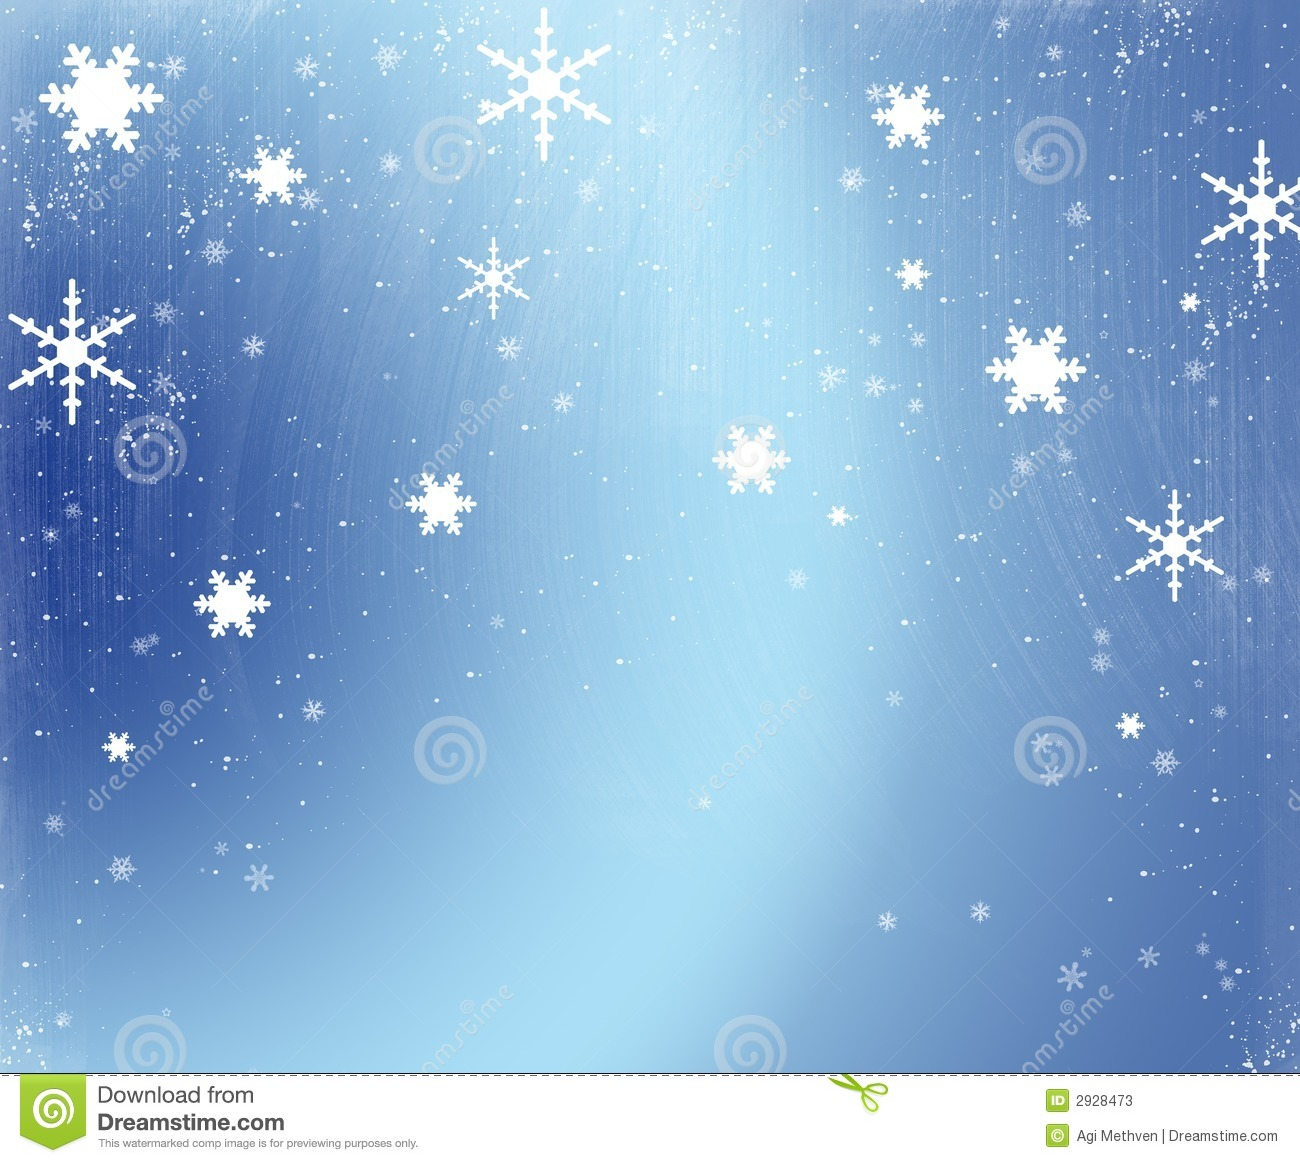 An illustration depicting a snowflake background.